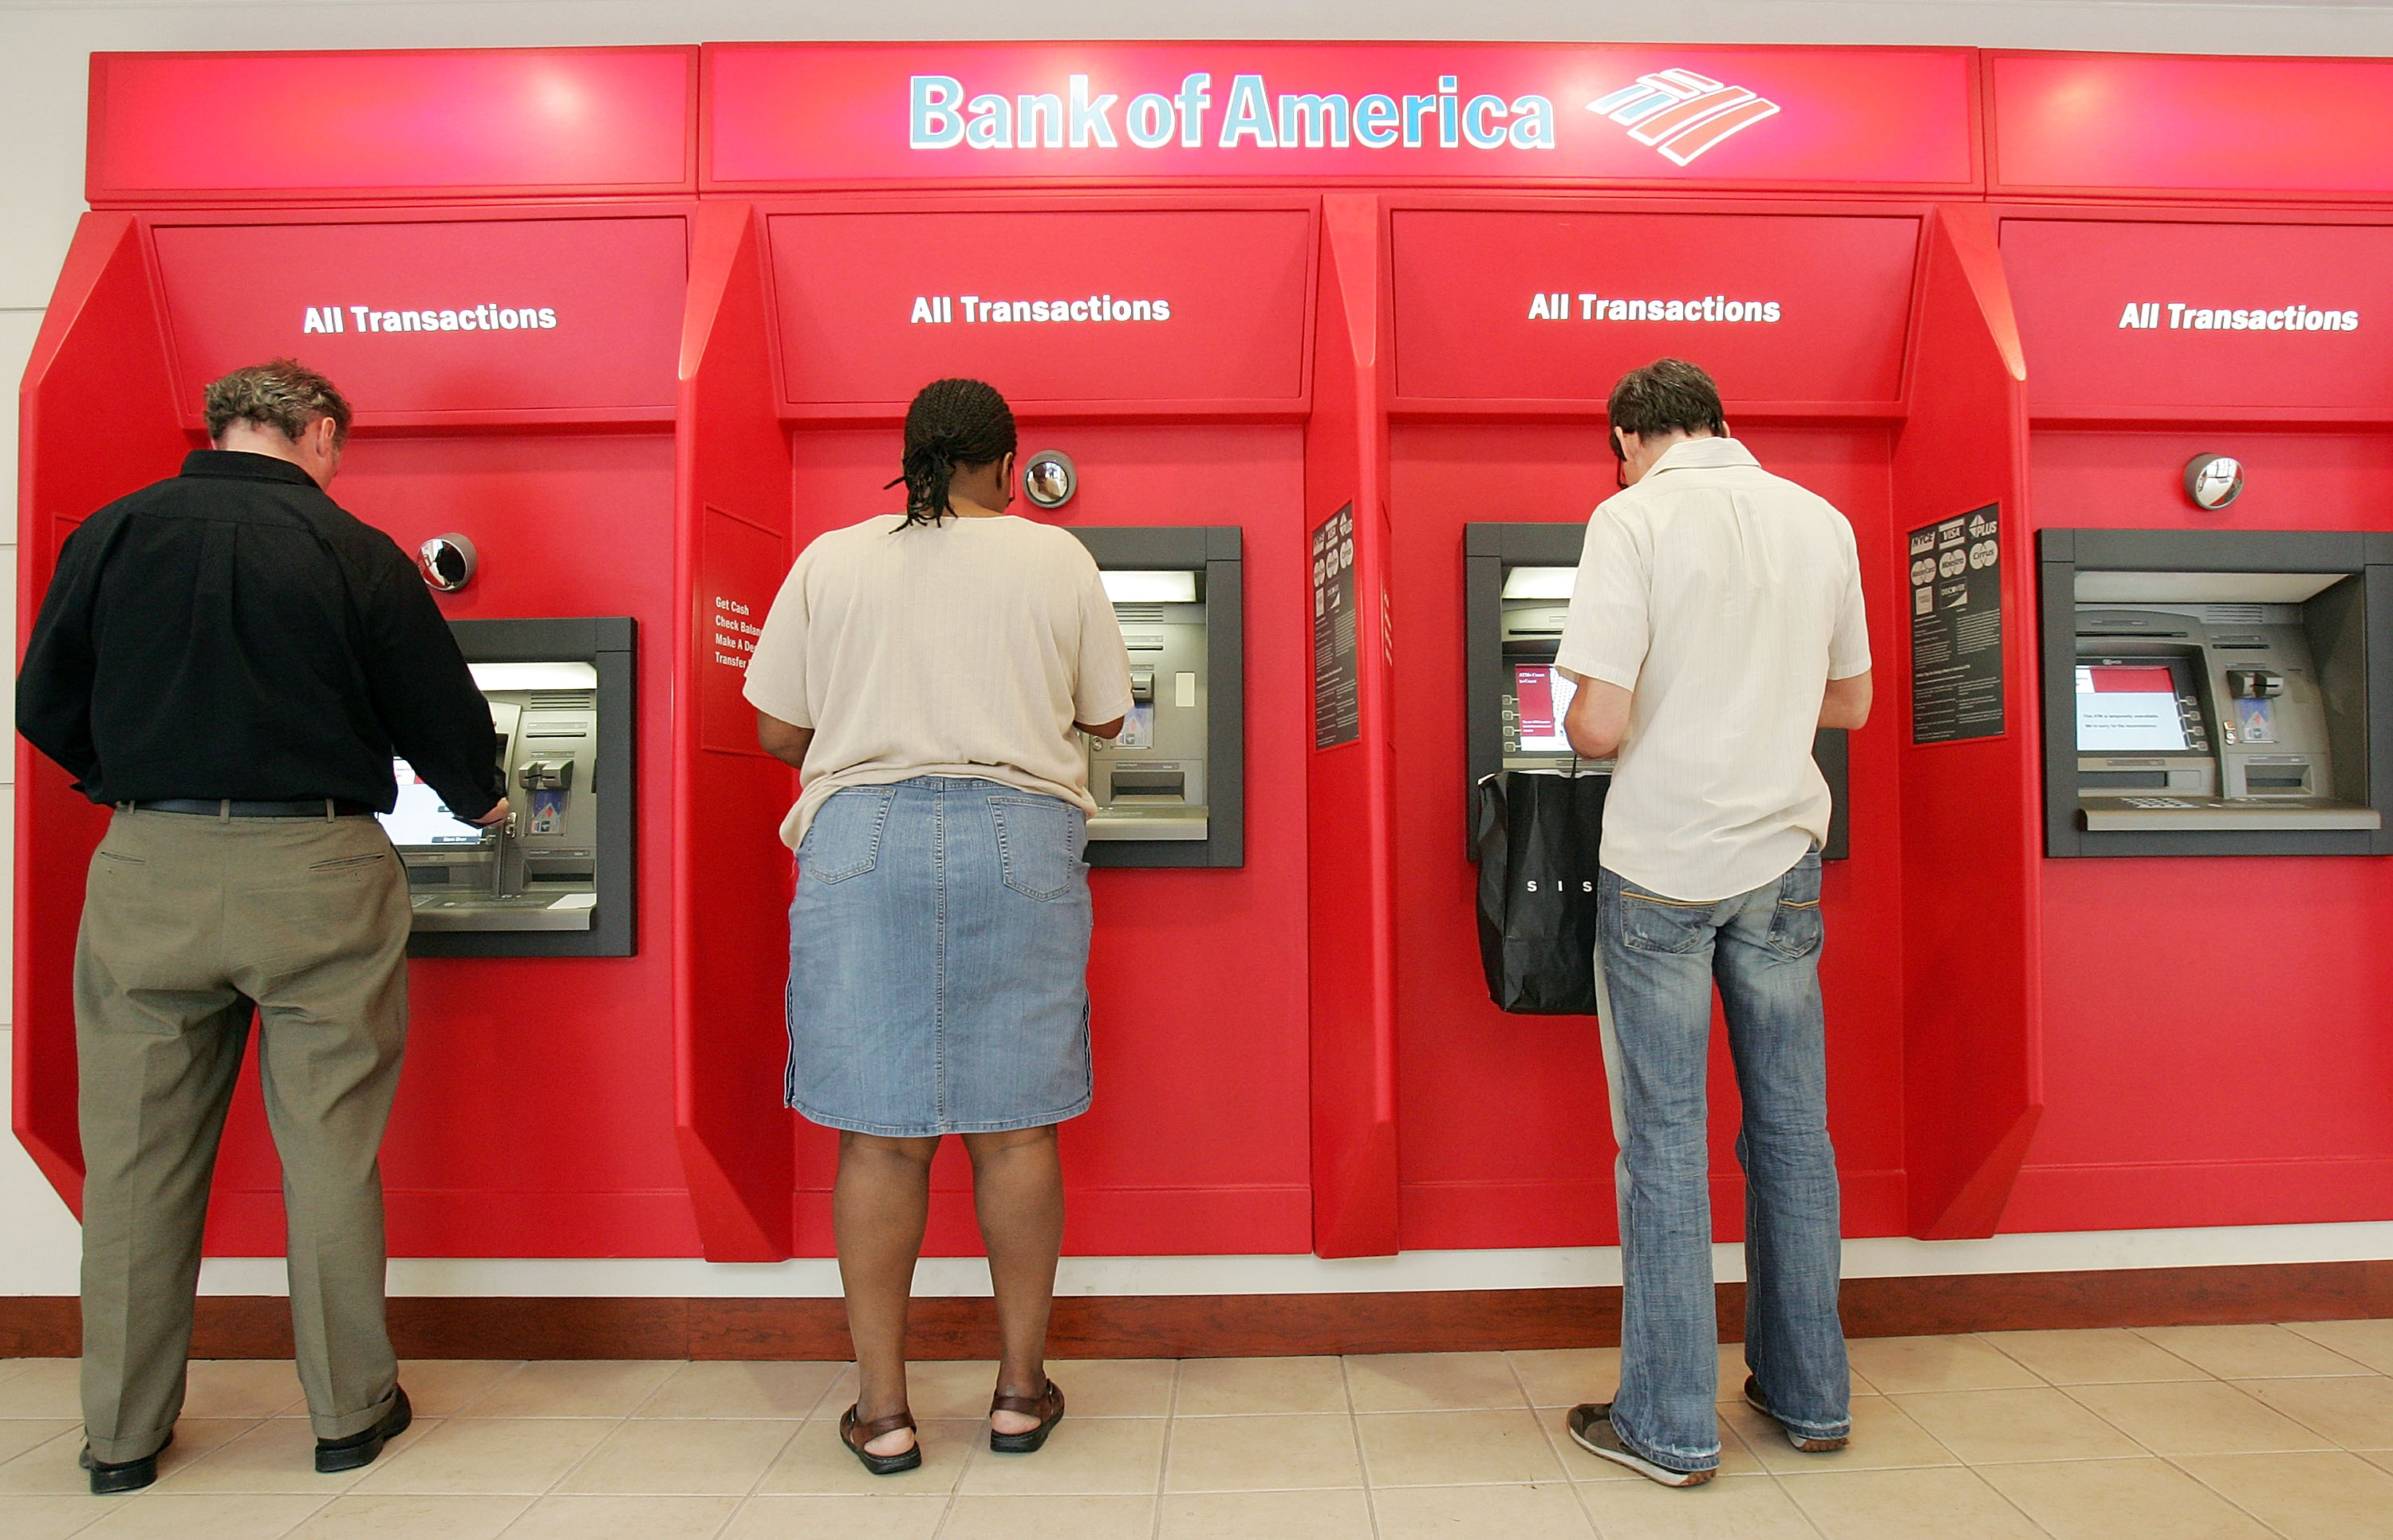 As banks installed ATMs, bank-teller employment rose.